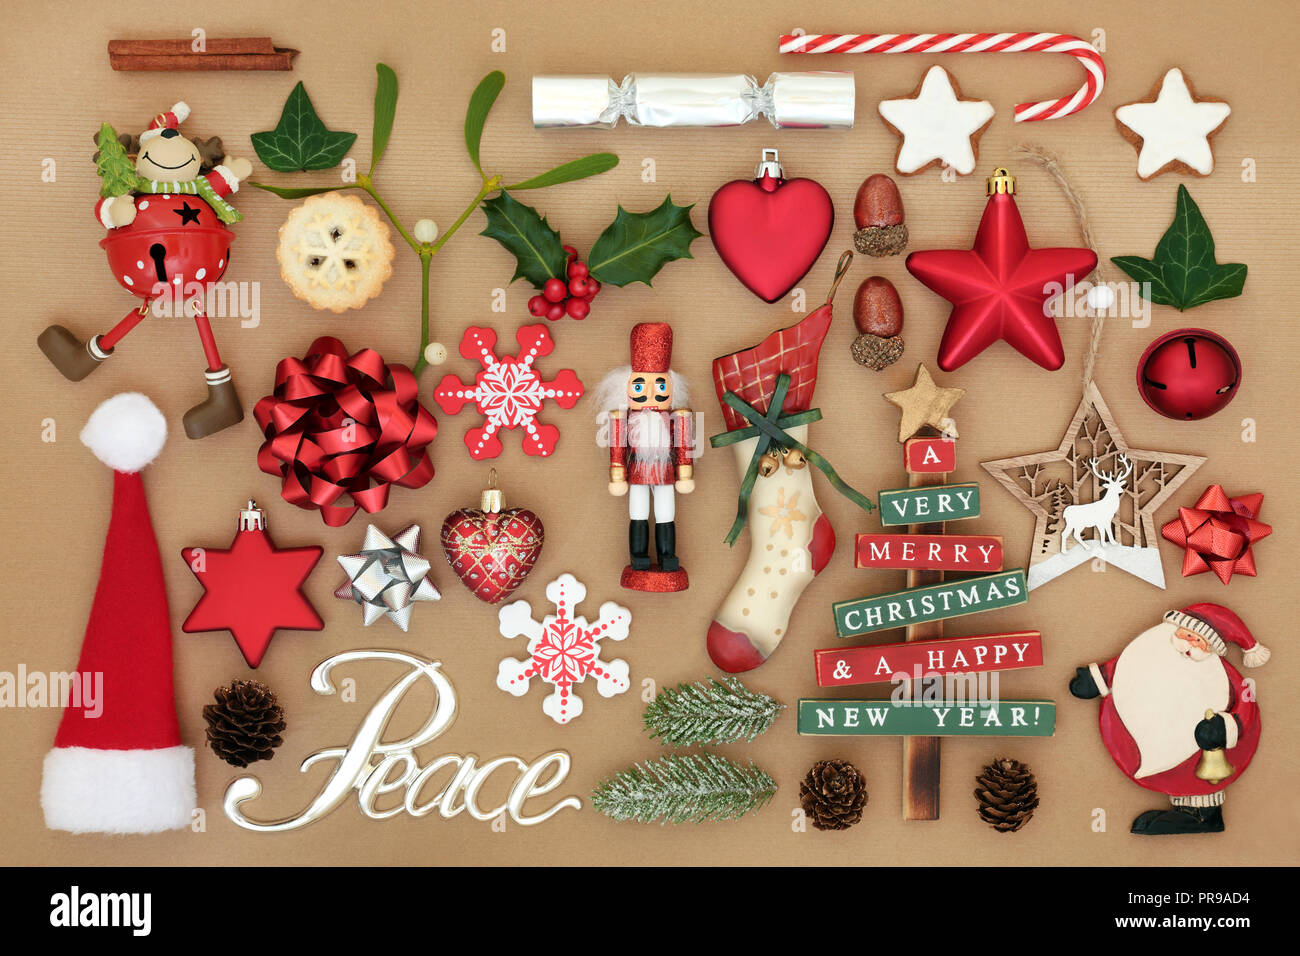 Christmas Peace High Resolution Stock Photography And Images Alamy